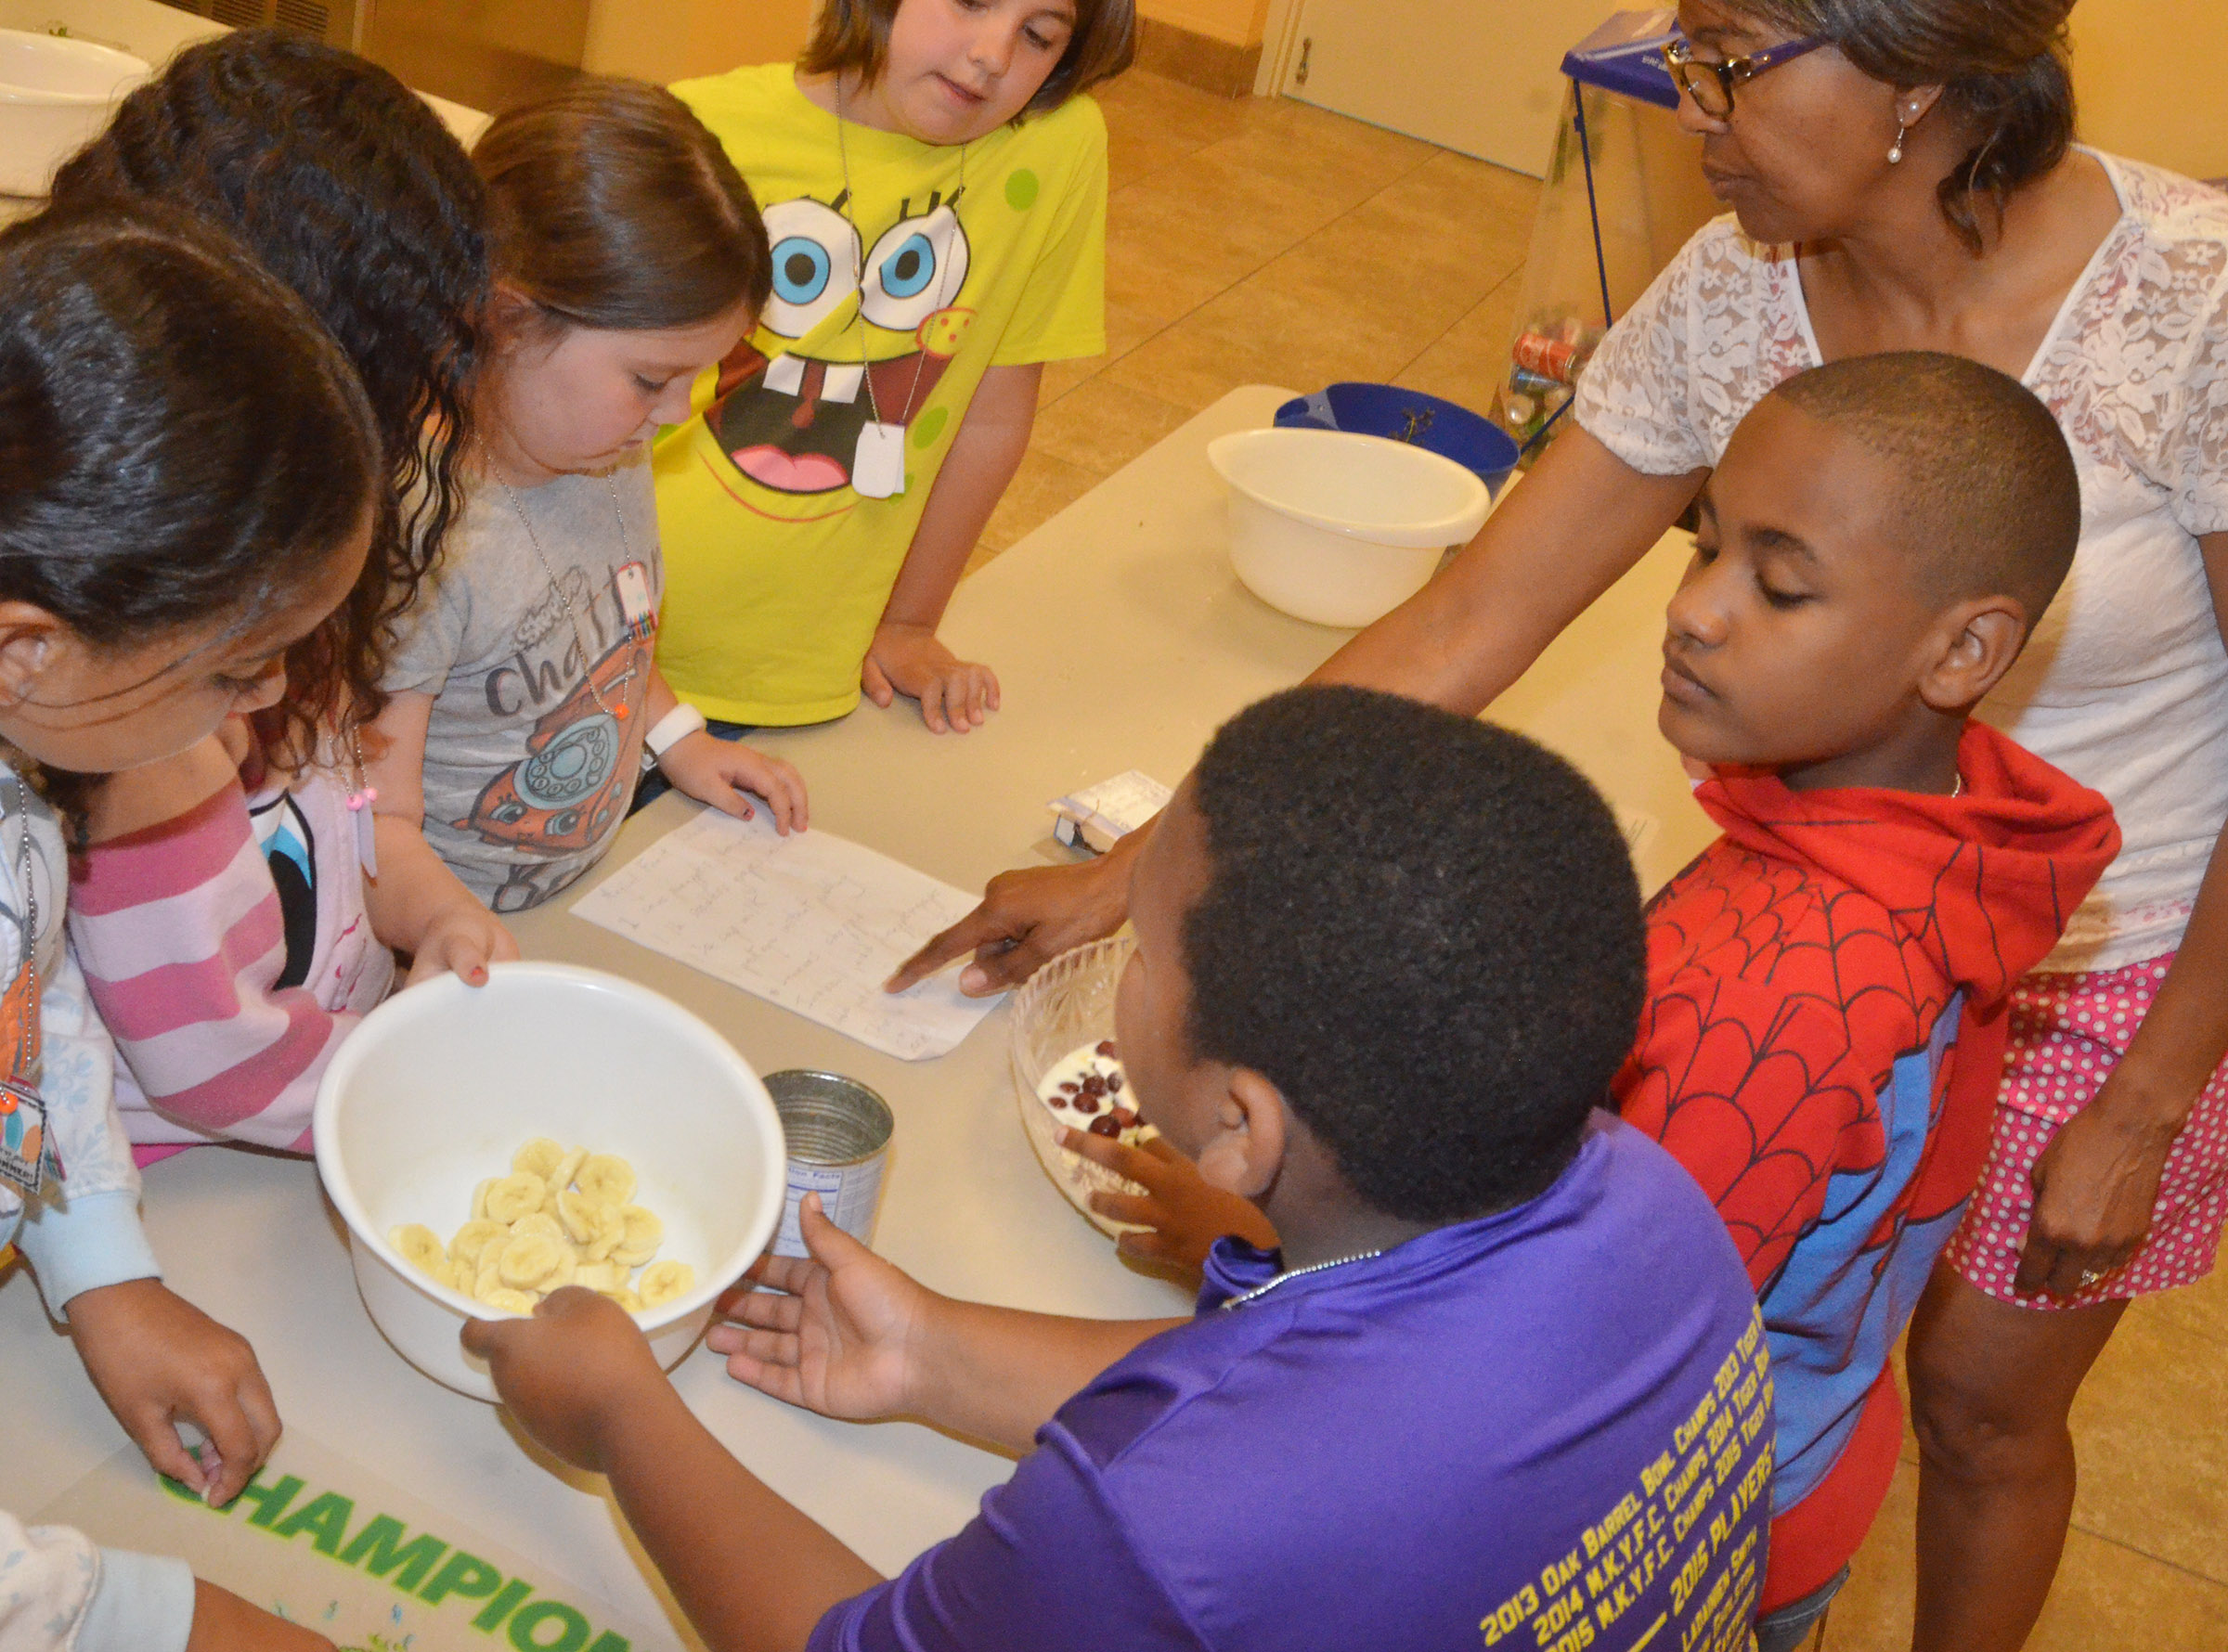 CES teacher Doretha Sanders helps third-graders as they prepare to make a healthy yogurt snack.